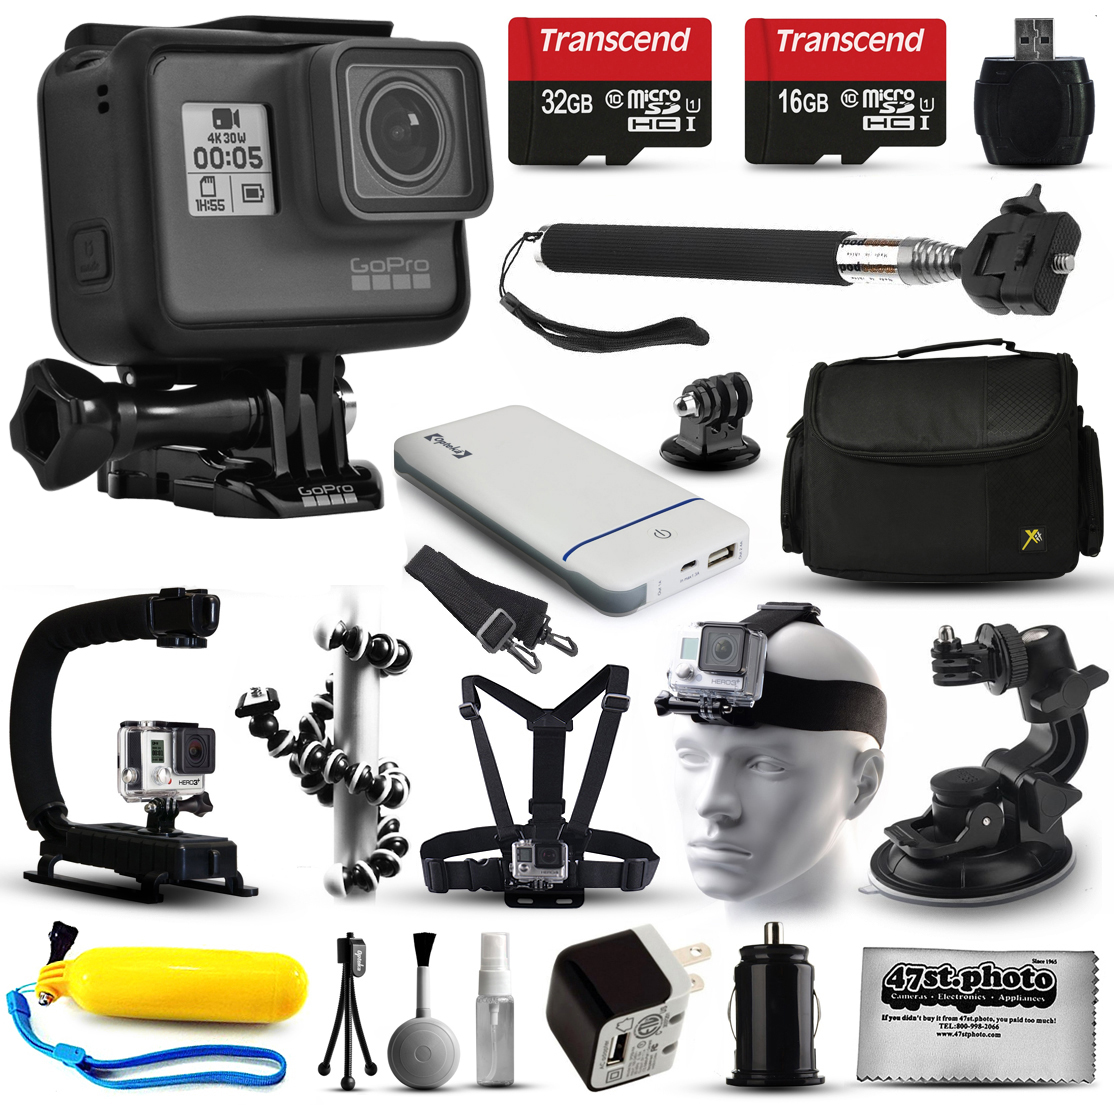 GoPro HERO6 Session HD Action Camera (CHDHS-601) with 32GB Card + Case + Floating Handle + Flexible Tripod + Head/Chest Strap + Car Mount + Opteka X-Grip + LED Light + Wrist Glove + Car Charger